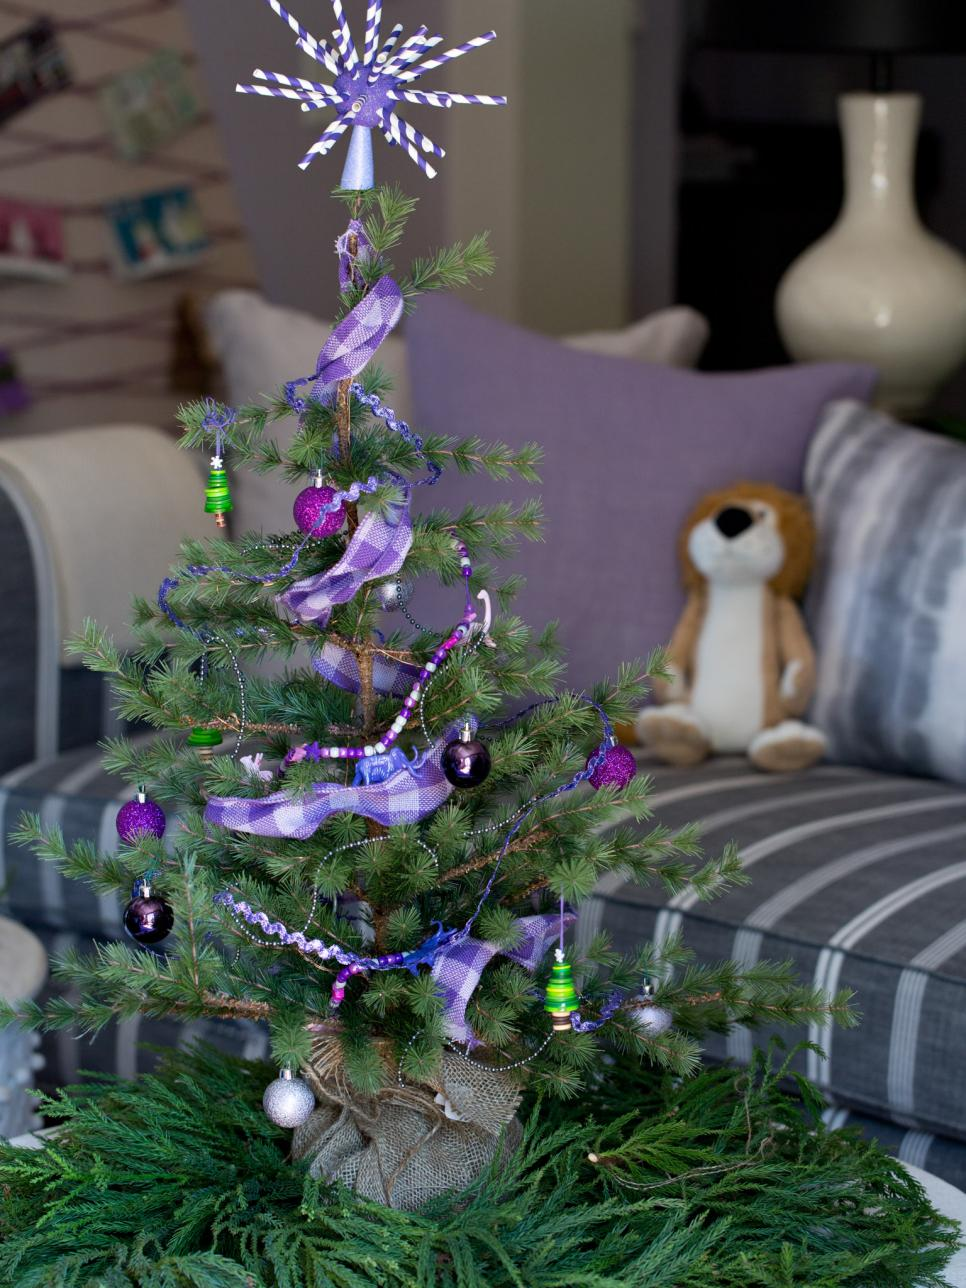 Christmas Decorations Ideas 2014 mini christmas tree ideas | hgtv